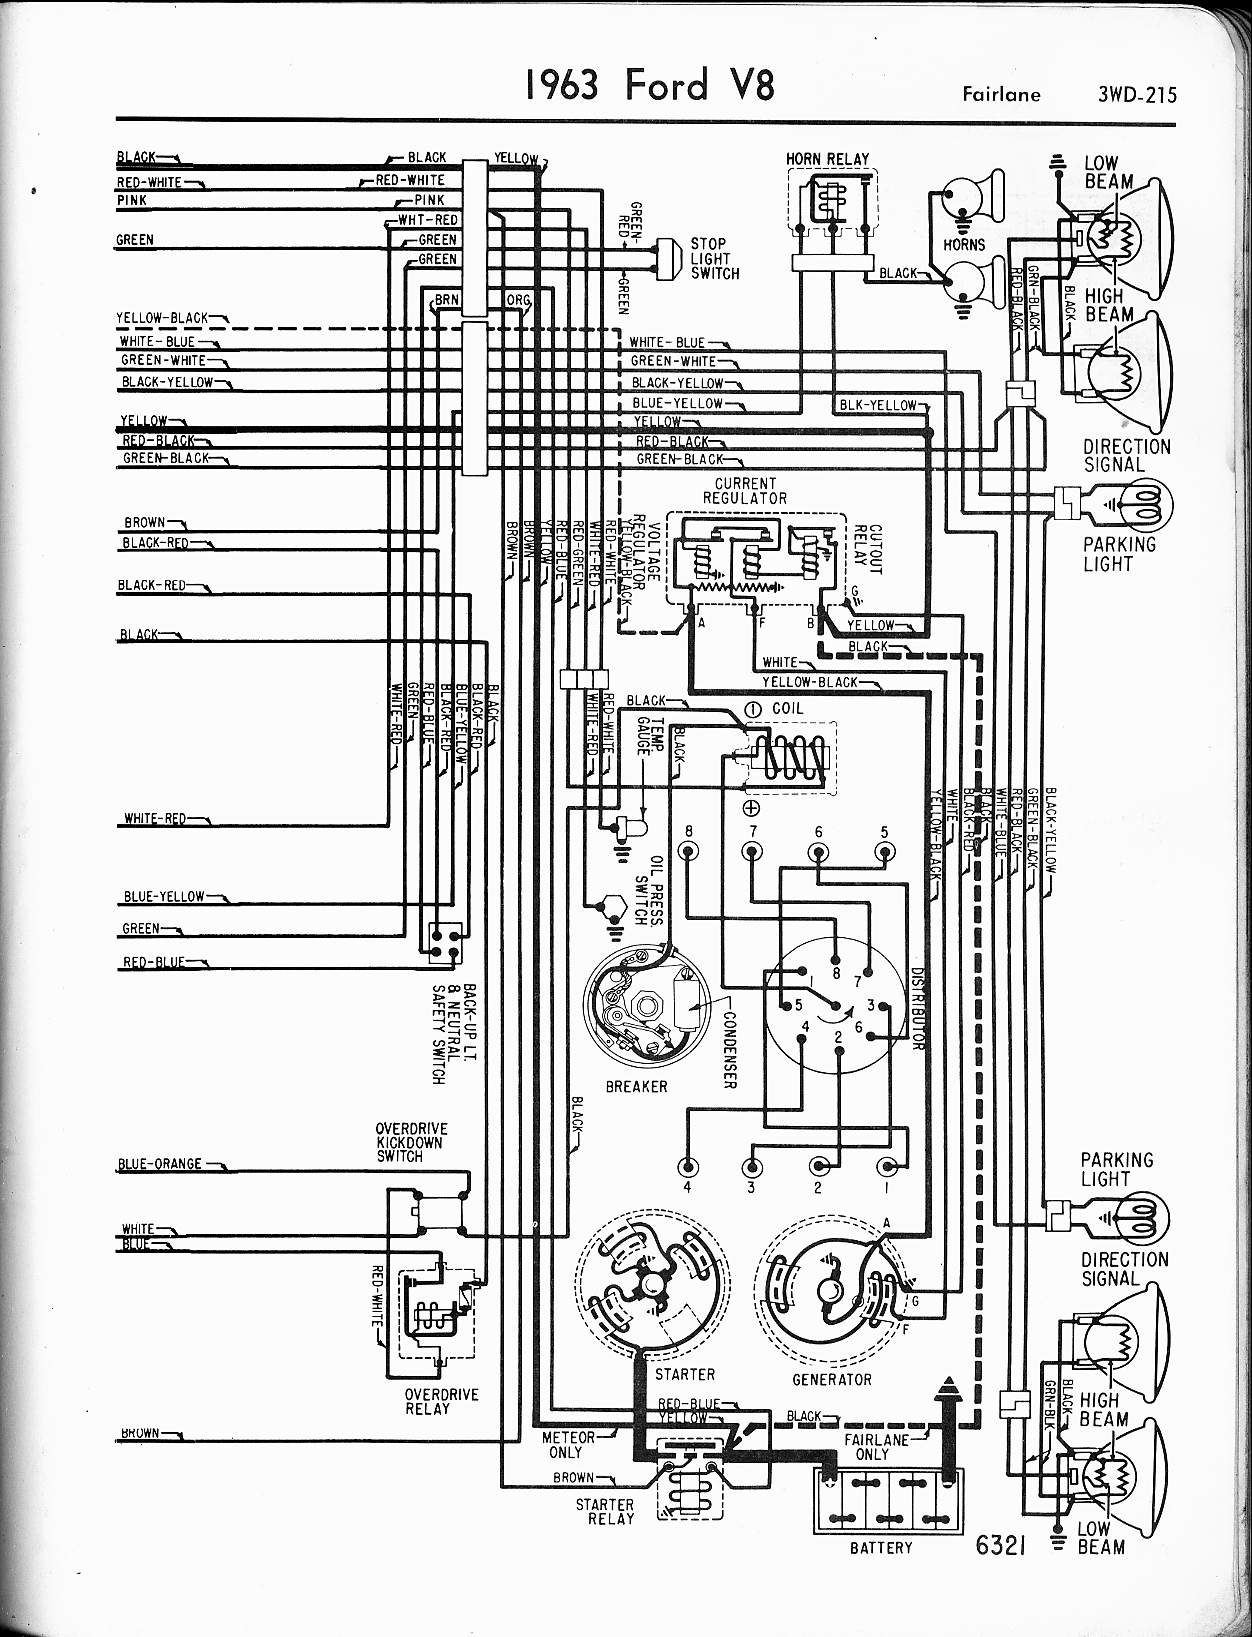 57 65 ford wiring diagrams rh oldcarmanualproject com 1969 Ford F100 Wiring Diagram 1969 Ford F100 Wiring Diagram